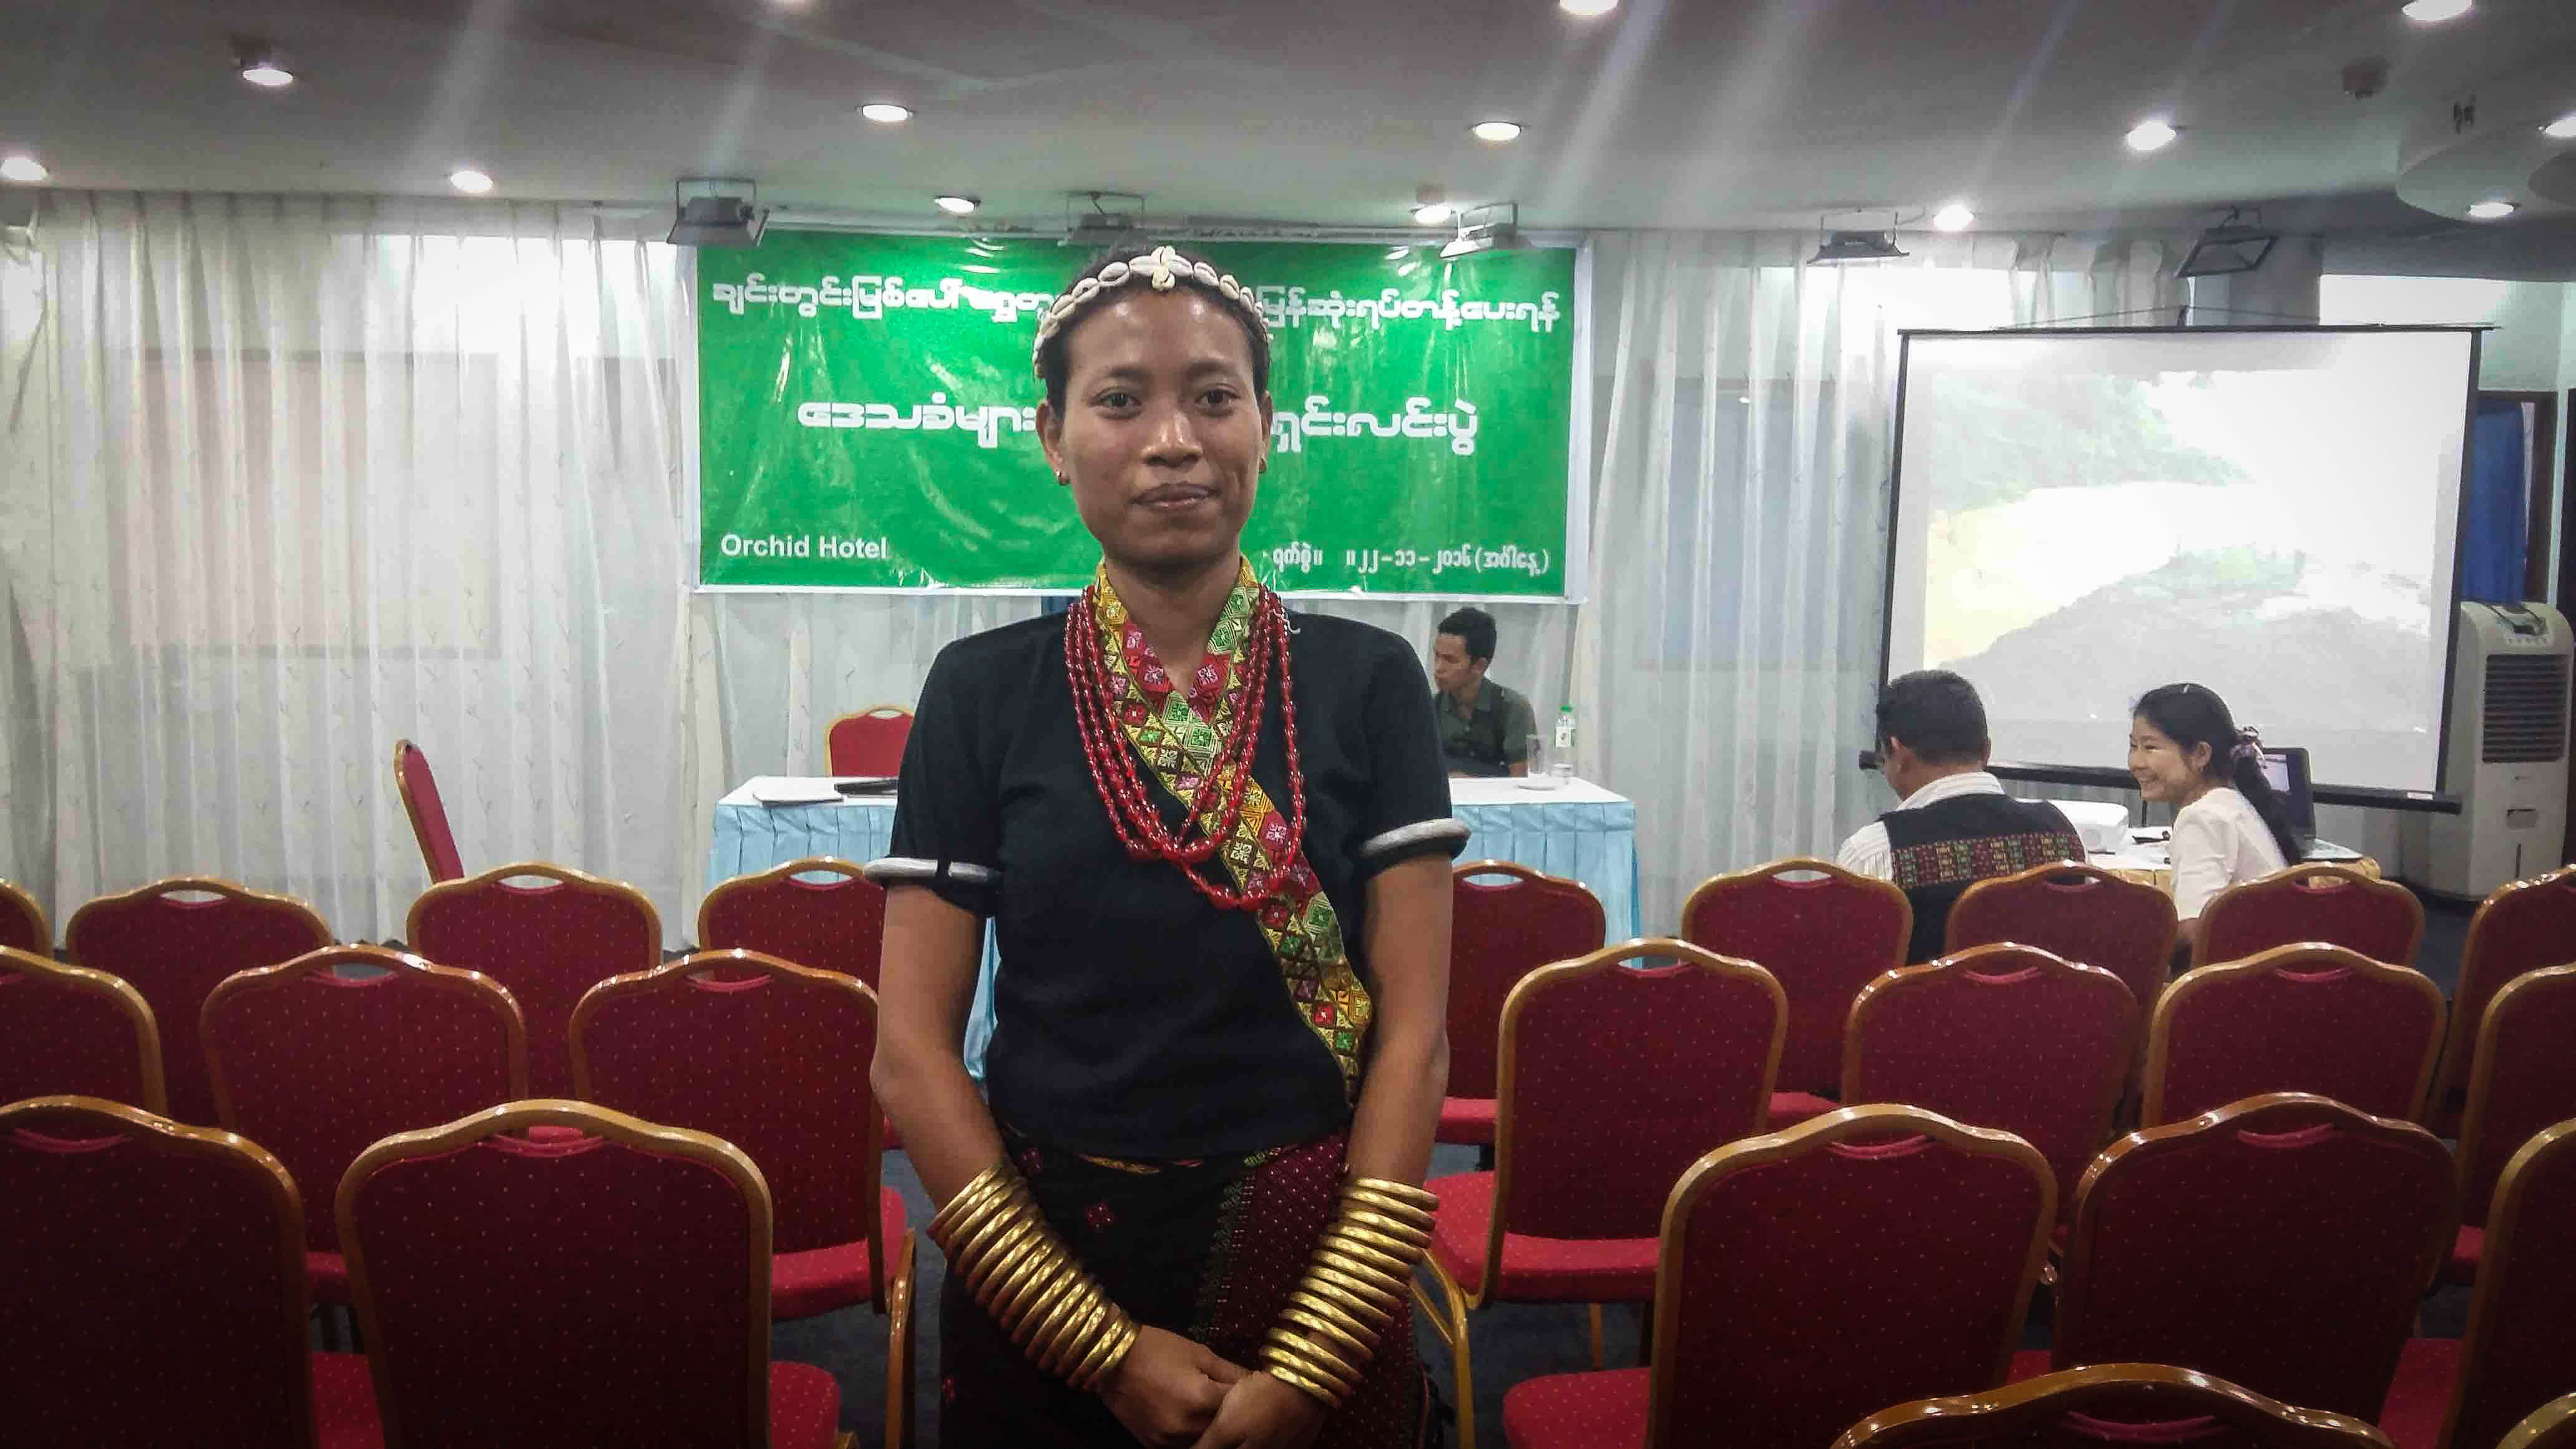 Kuki Women leader Boinu says there has been a rise in drugs and domestic abuse in her community since gold mining began in Sagaing Division along the Chindwin River. (Photo: Libby Hogan / DVB)